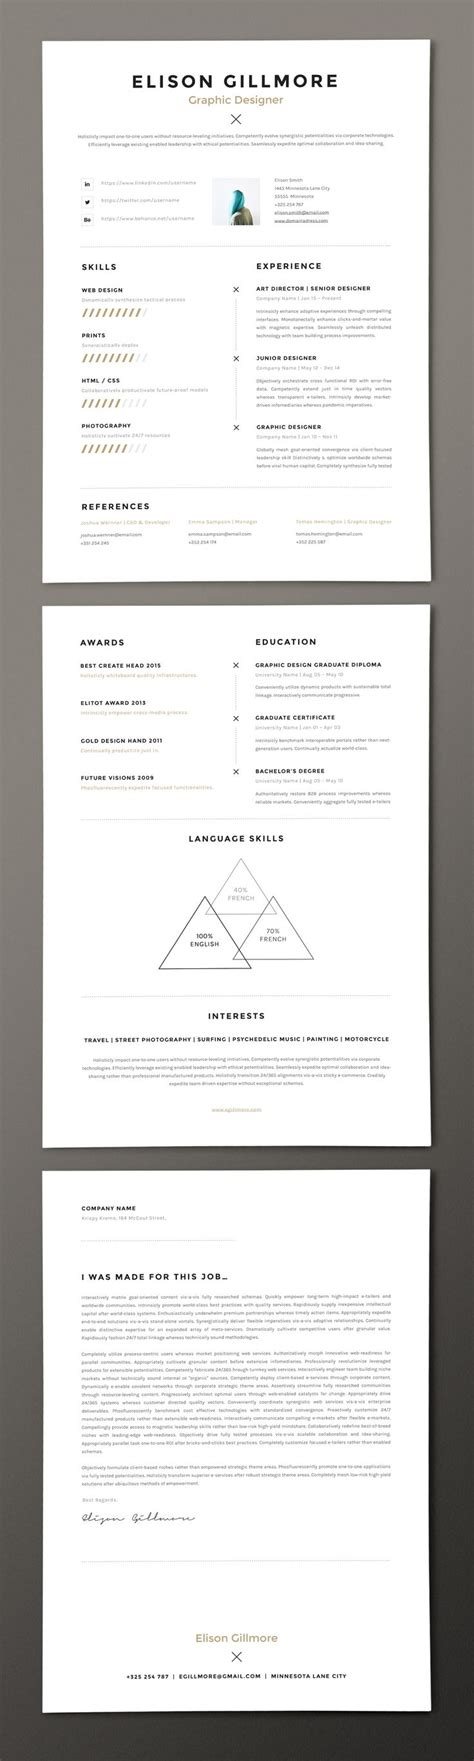 Windows Resume Templates by 66 Best Free Resume Templates For Word Images On